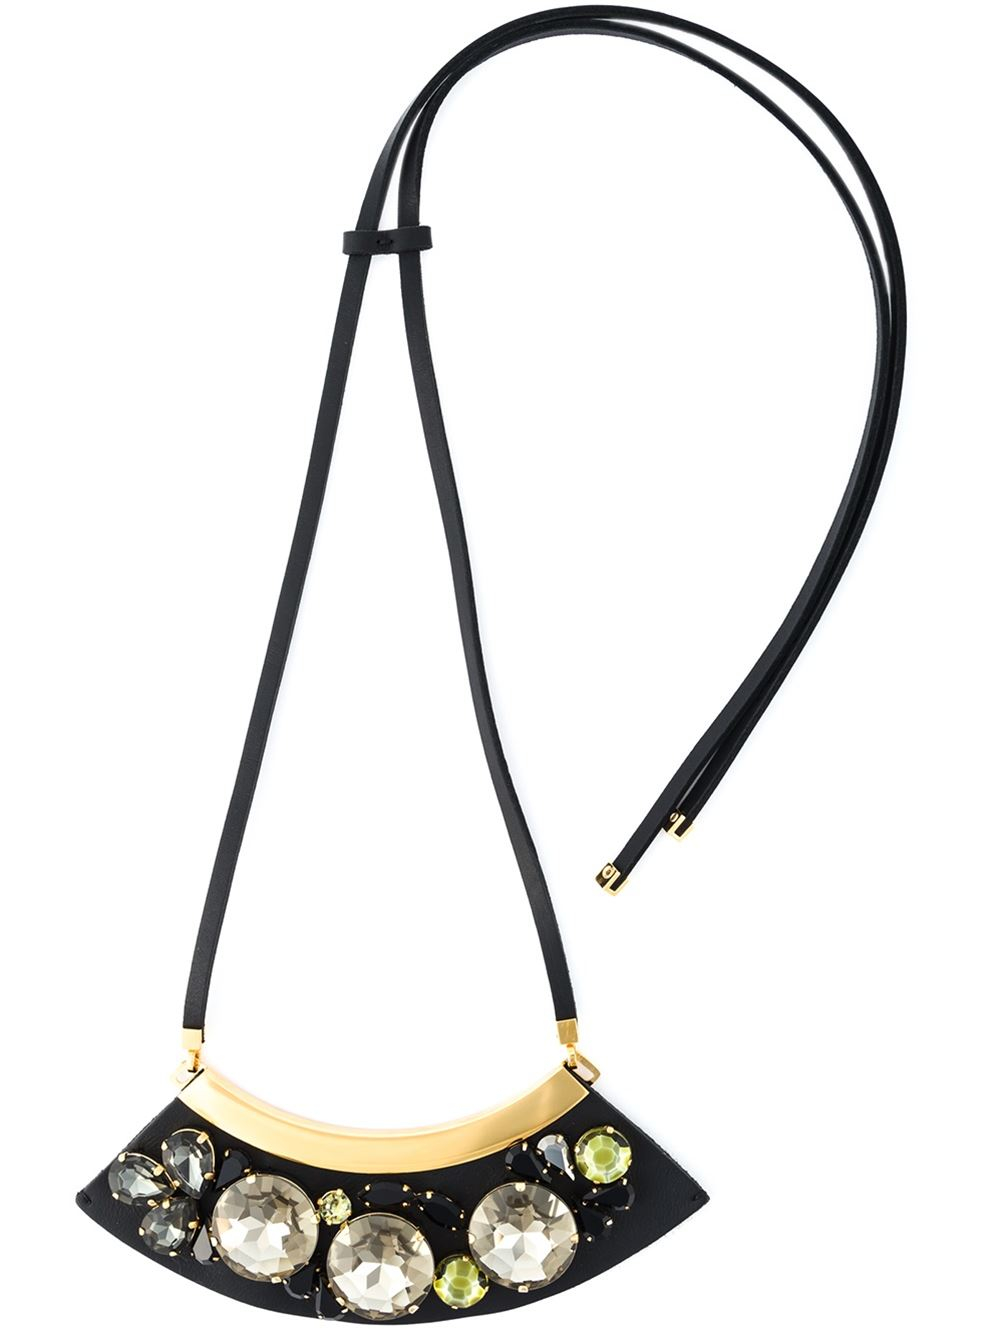 Express your unique style with Marni necklaces. Strikingly remarkable and refreshingly original, Marni jewel pieces are the choice of contemporary women with a rebellious attitude and non-conformist spirit.